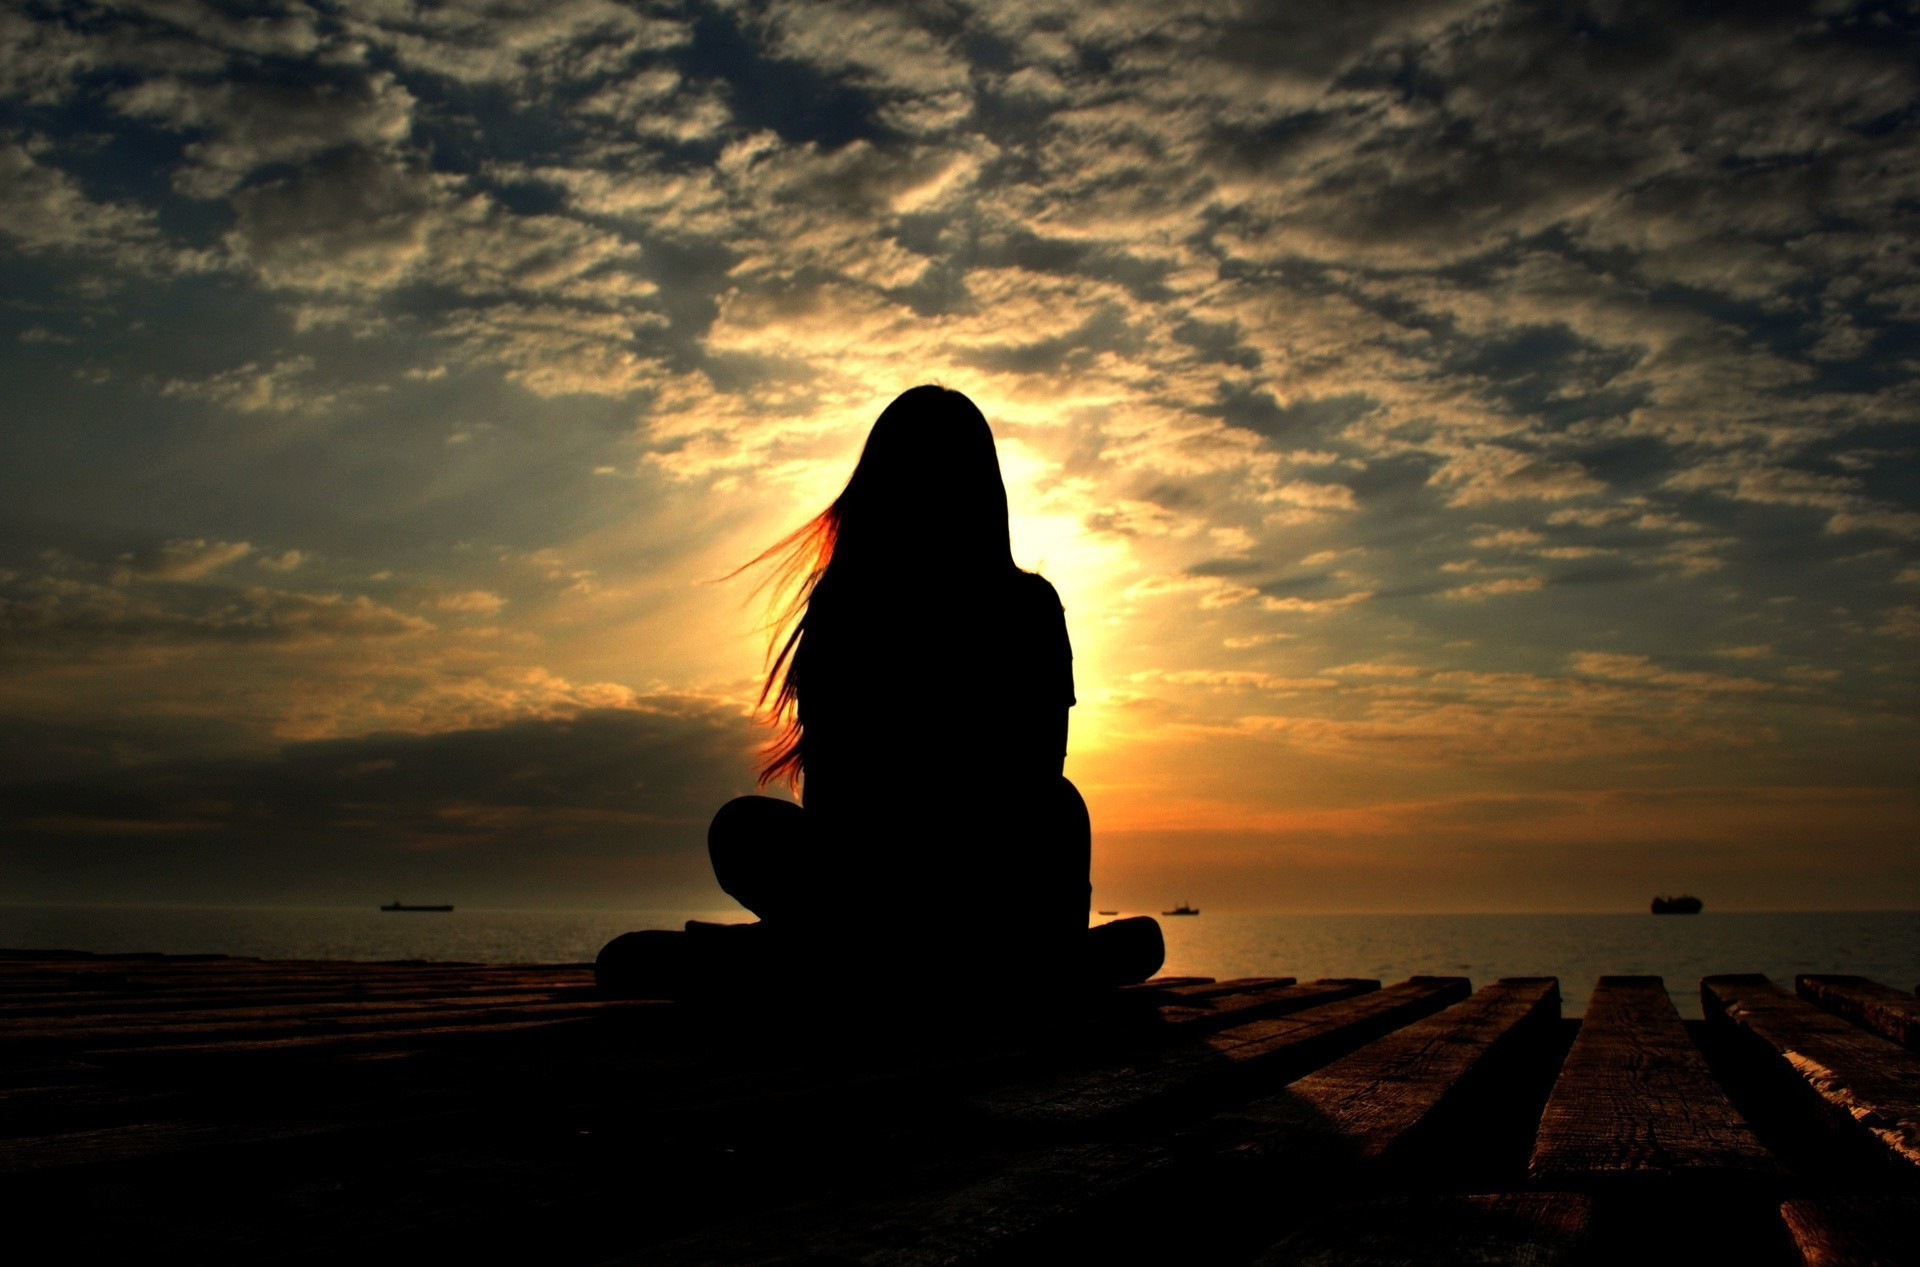 Silhouette of a girl sitting in the Lotus position closed sun